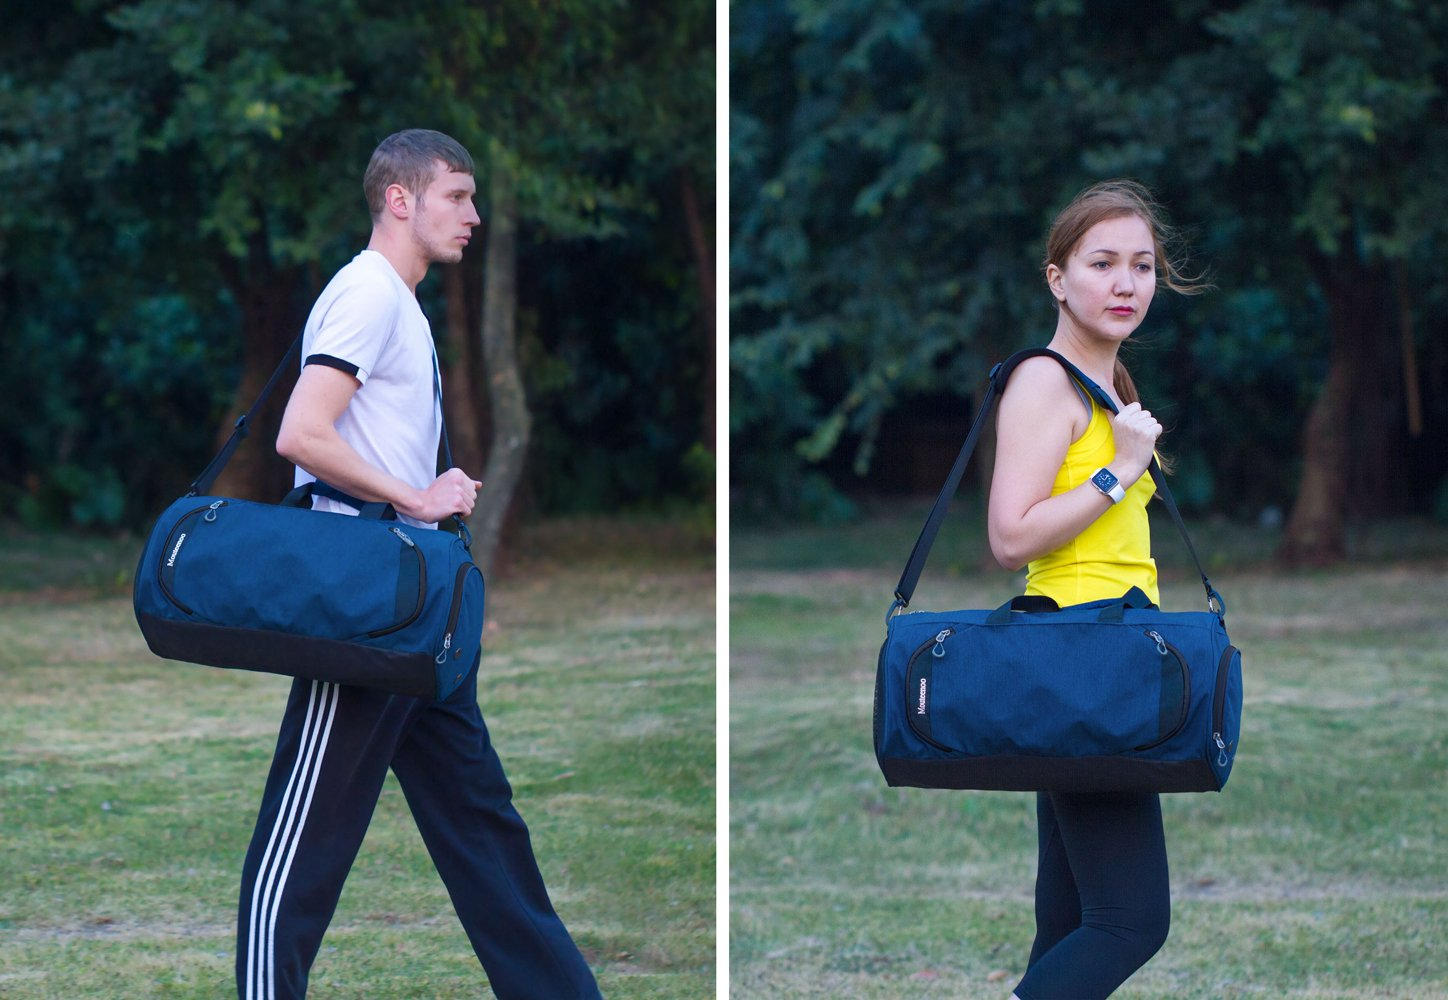 Gym Sports Small Duffel Bag for Men and Women with Shoes Compartment - Mouteenoo (Small, Blue/Black) by Mouteenoo (Image #2)